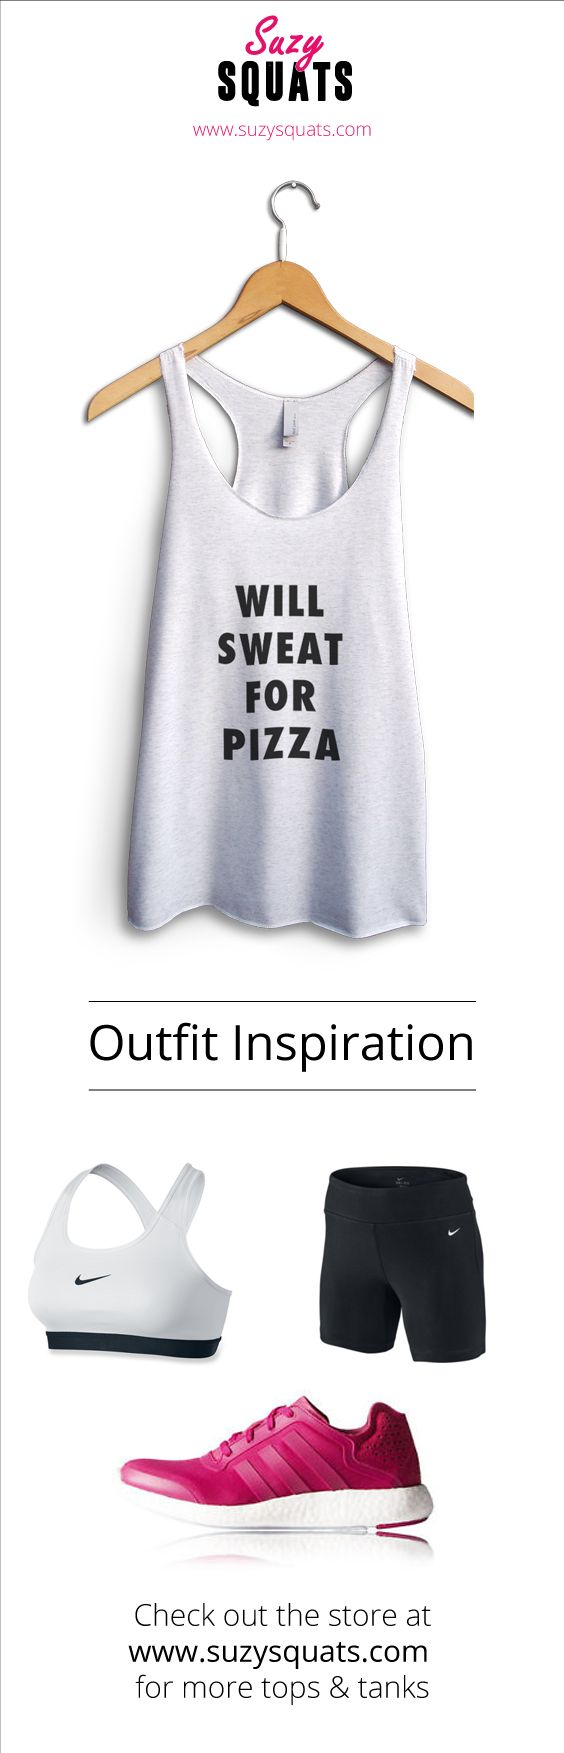 Suzy Squats funny workout tank top for pizza lovers! Perfect if you love the gym but can't get enough of pizza. You can find more funny workout clothing at the Suzy Squats store by clicking the link above. Pizza | Fitness Quote | Workout Clothes | Fitness Women | FoodieSuzy